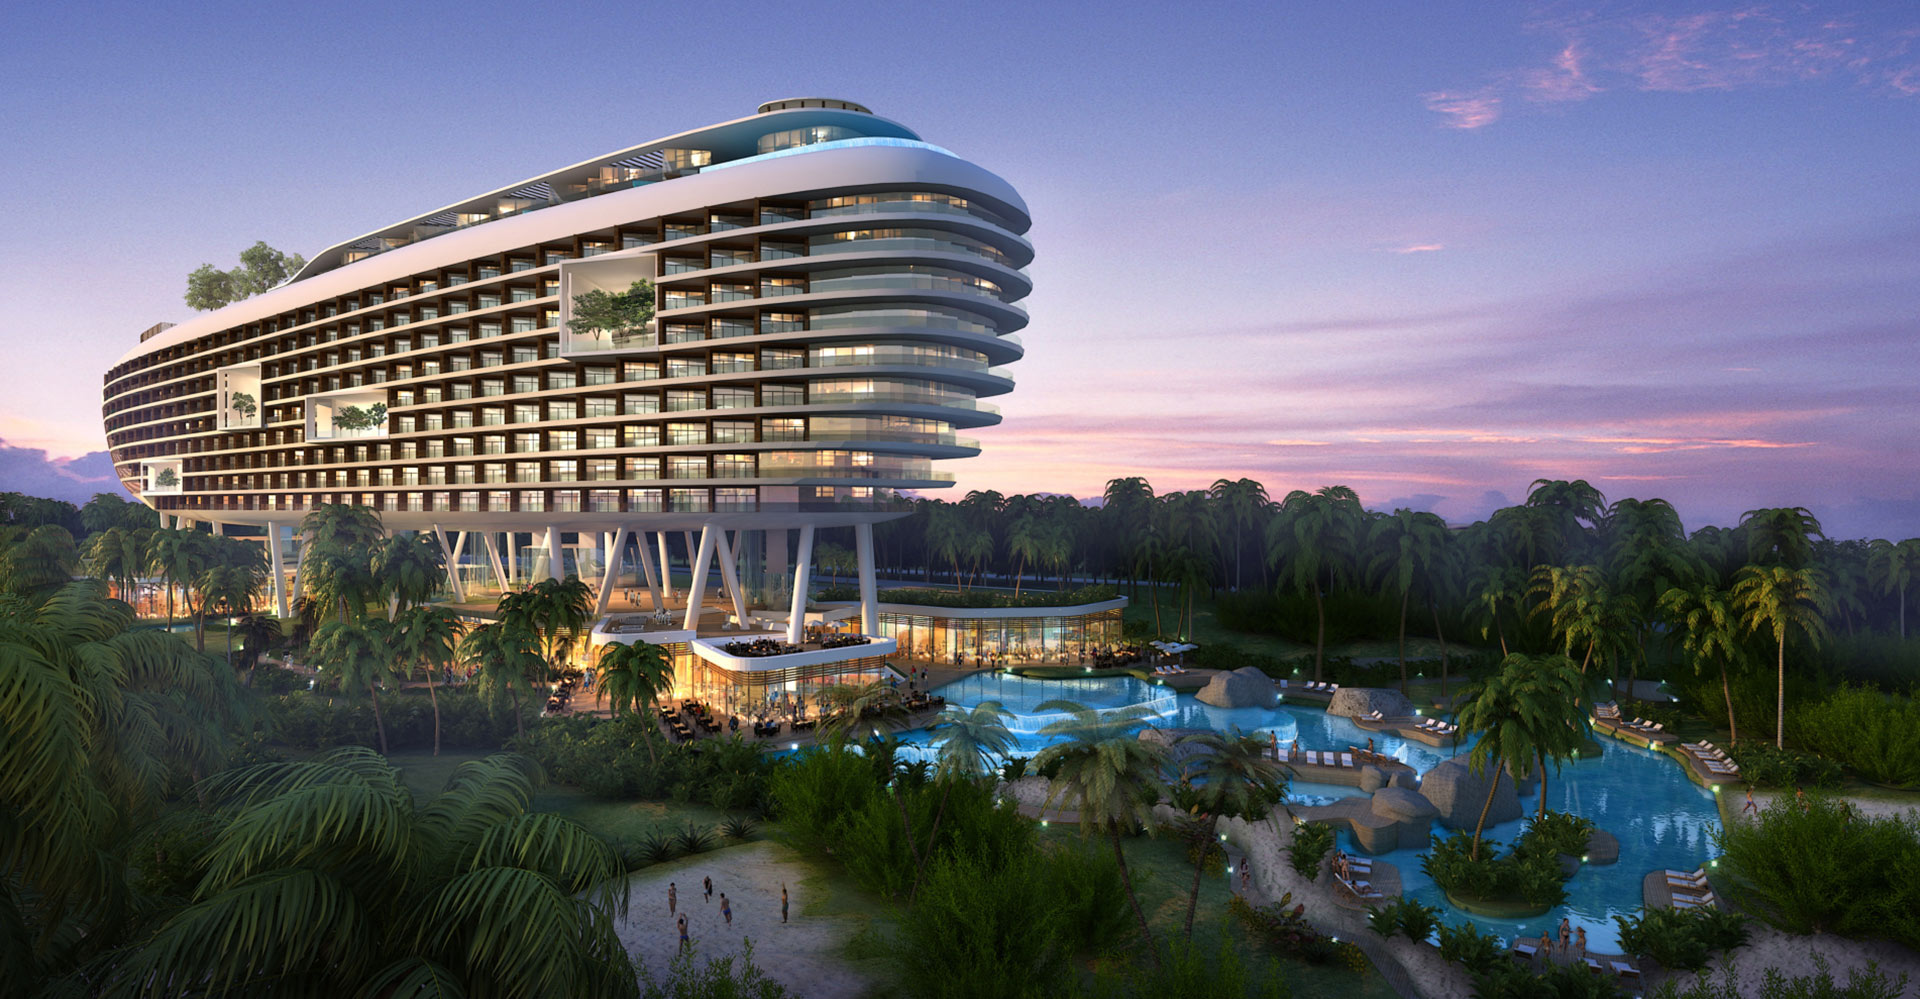 Yanlord Crowne Plaza Resort China WATG Exterior